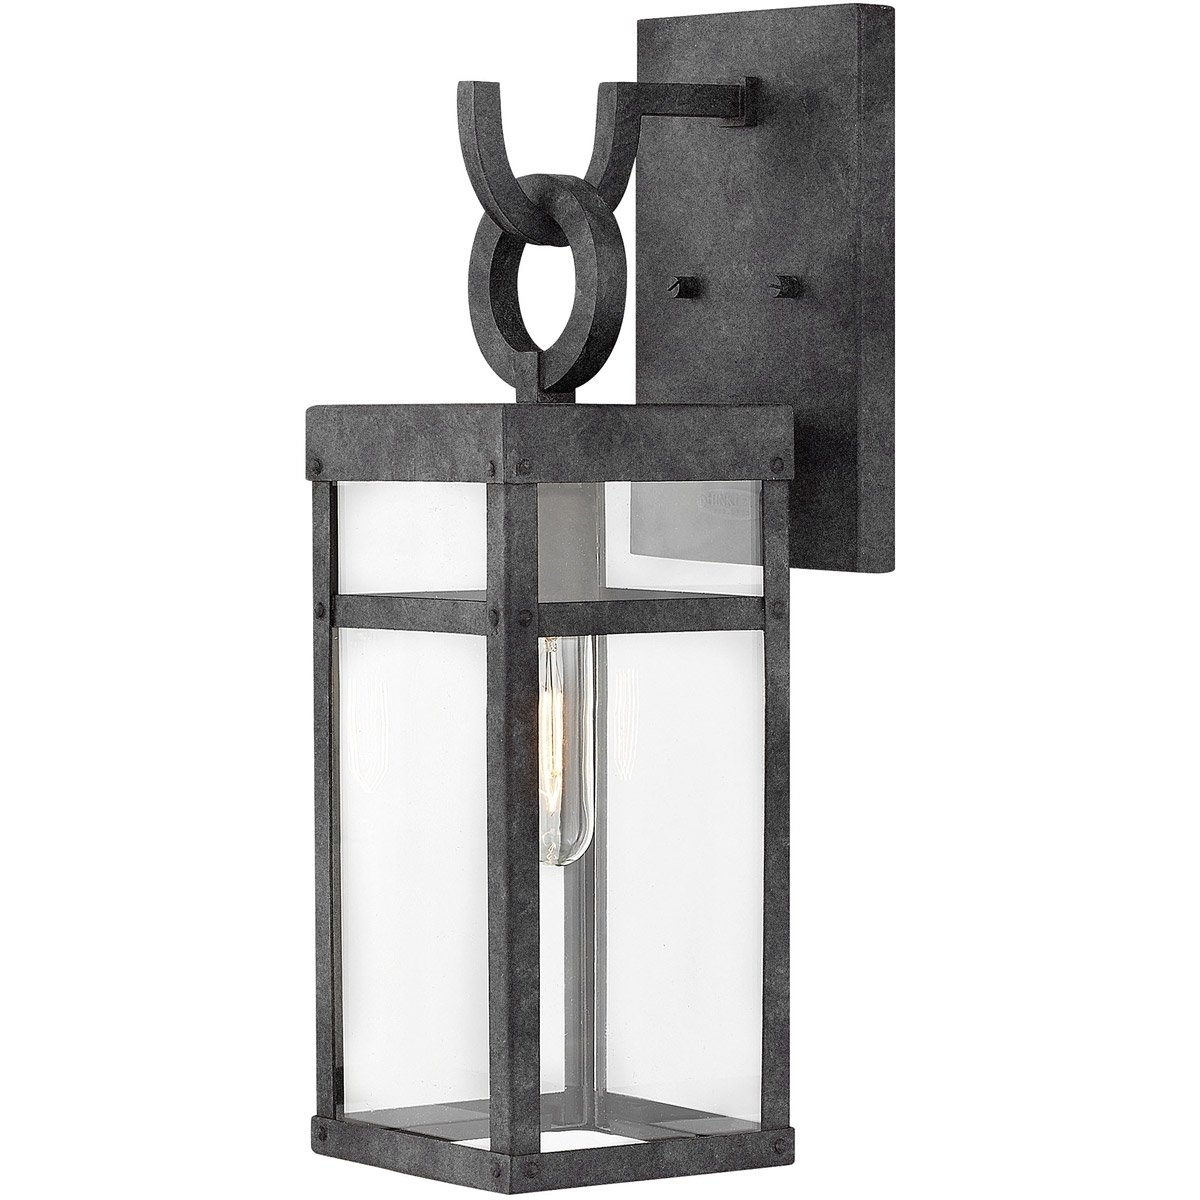 Hinkley Lighting 2800Dz Porter 1 Light 19 Inch Aged Zinc Outdoor Pertaining To Mini Wall Mount Hinkley Lighting (#11 of 15)